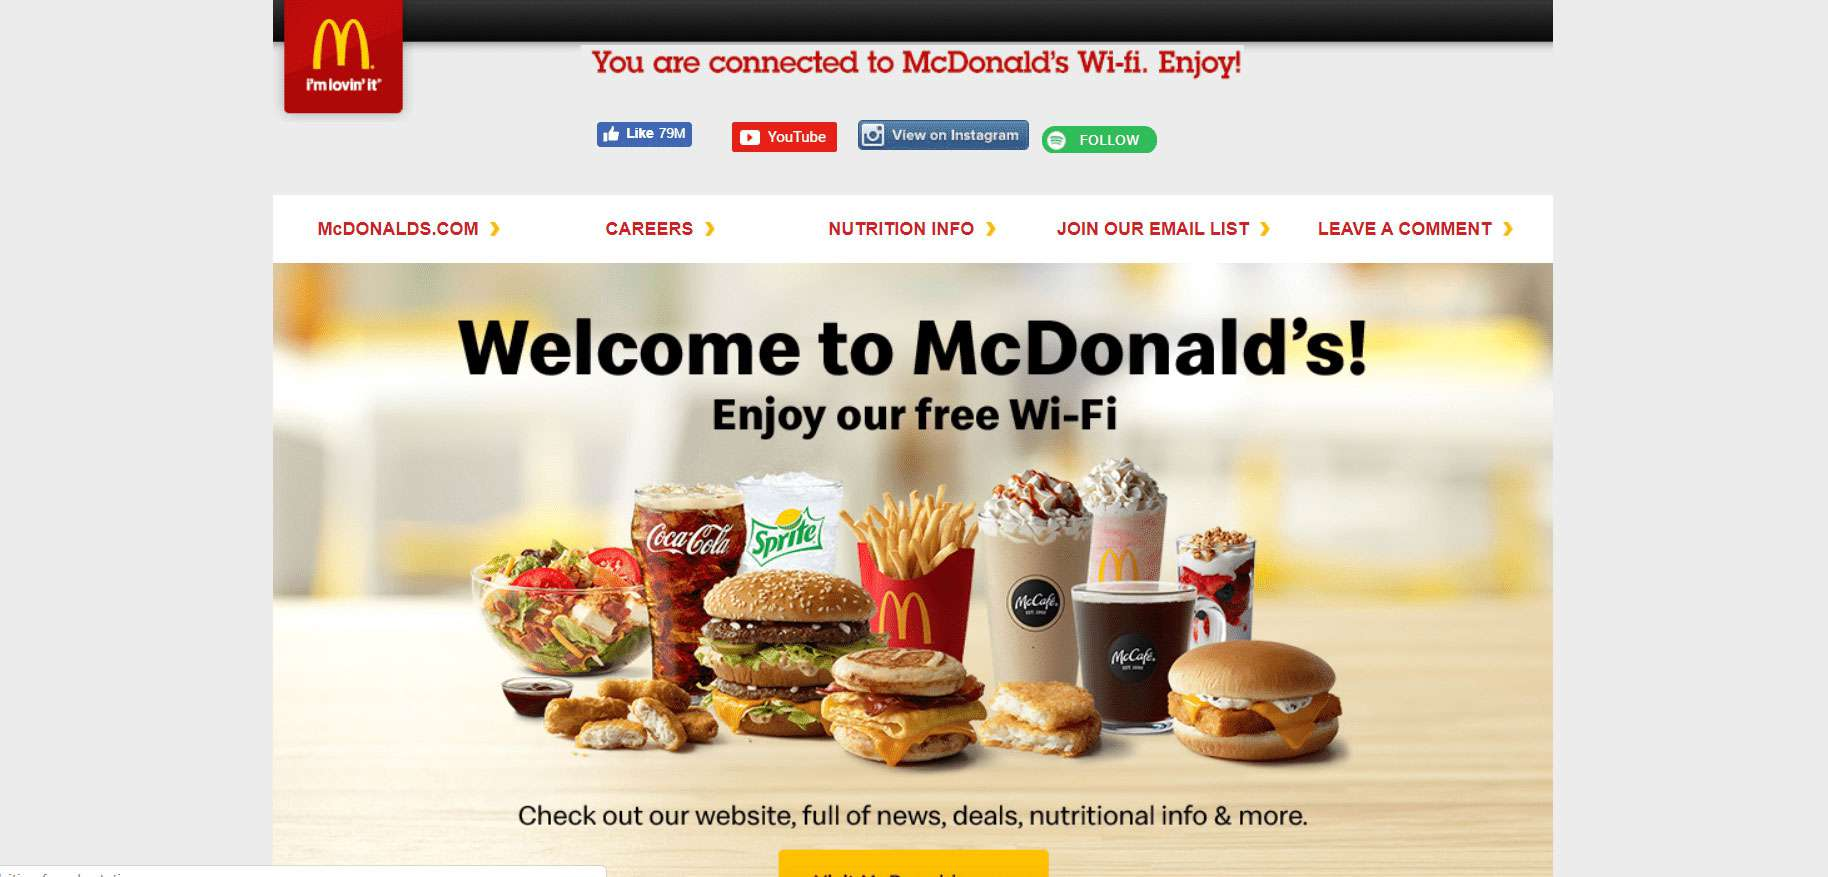 The McDonald's Wi-Fi welcome page